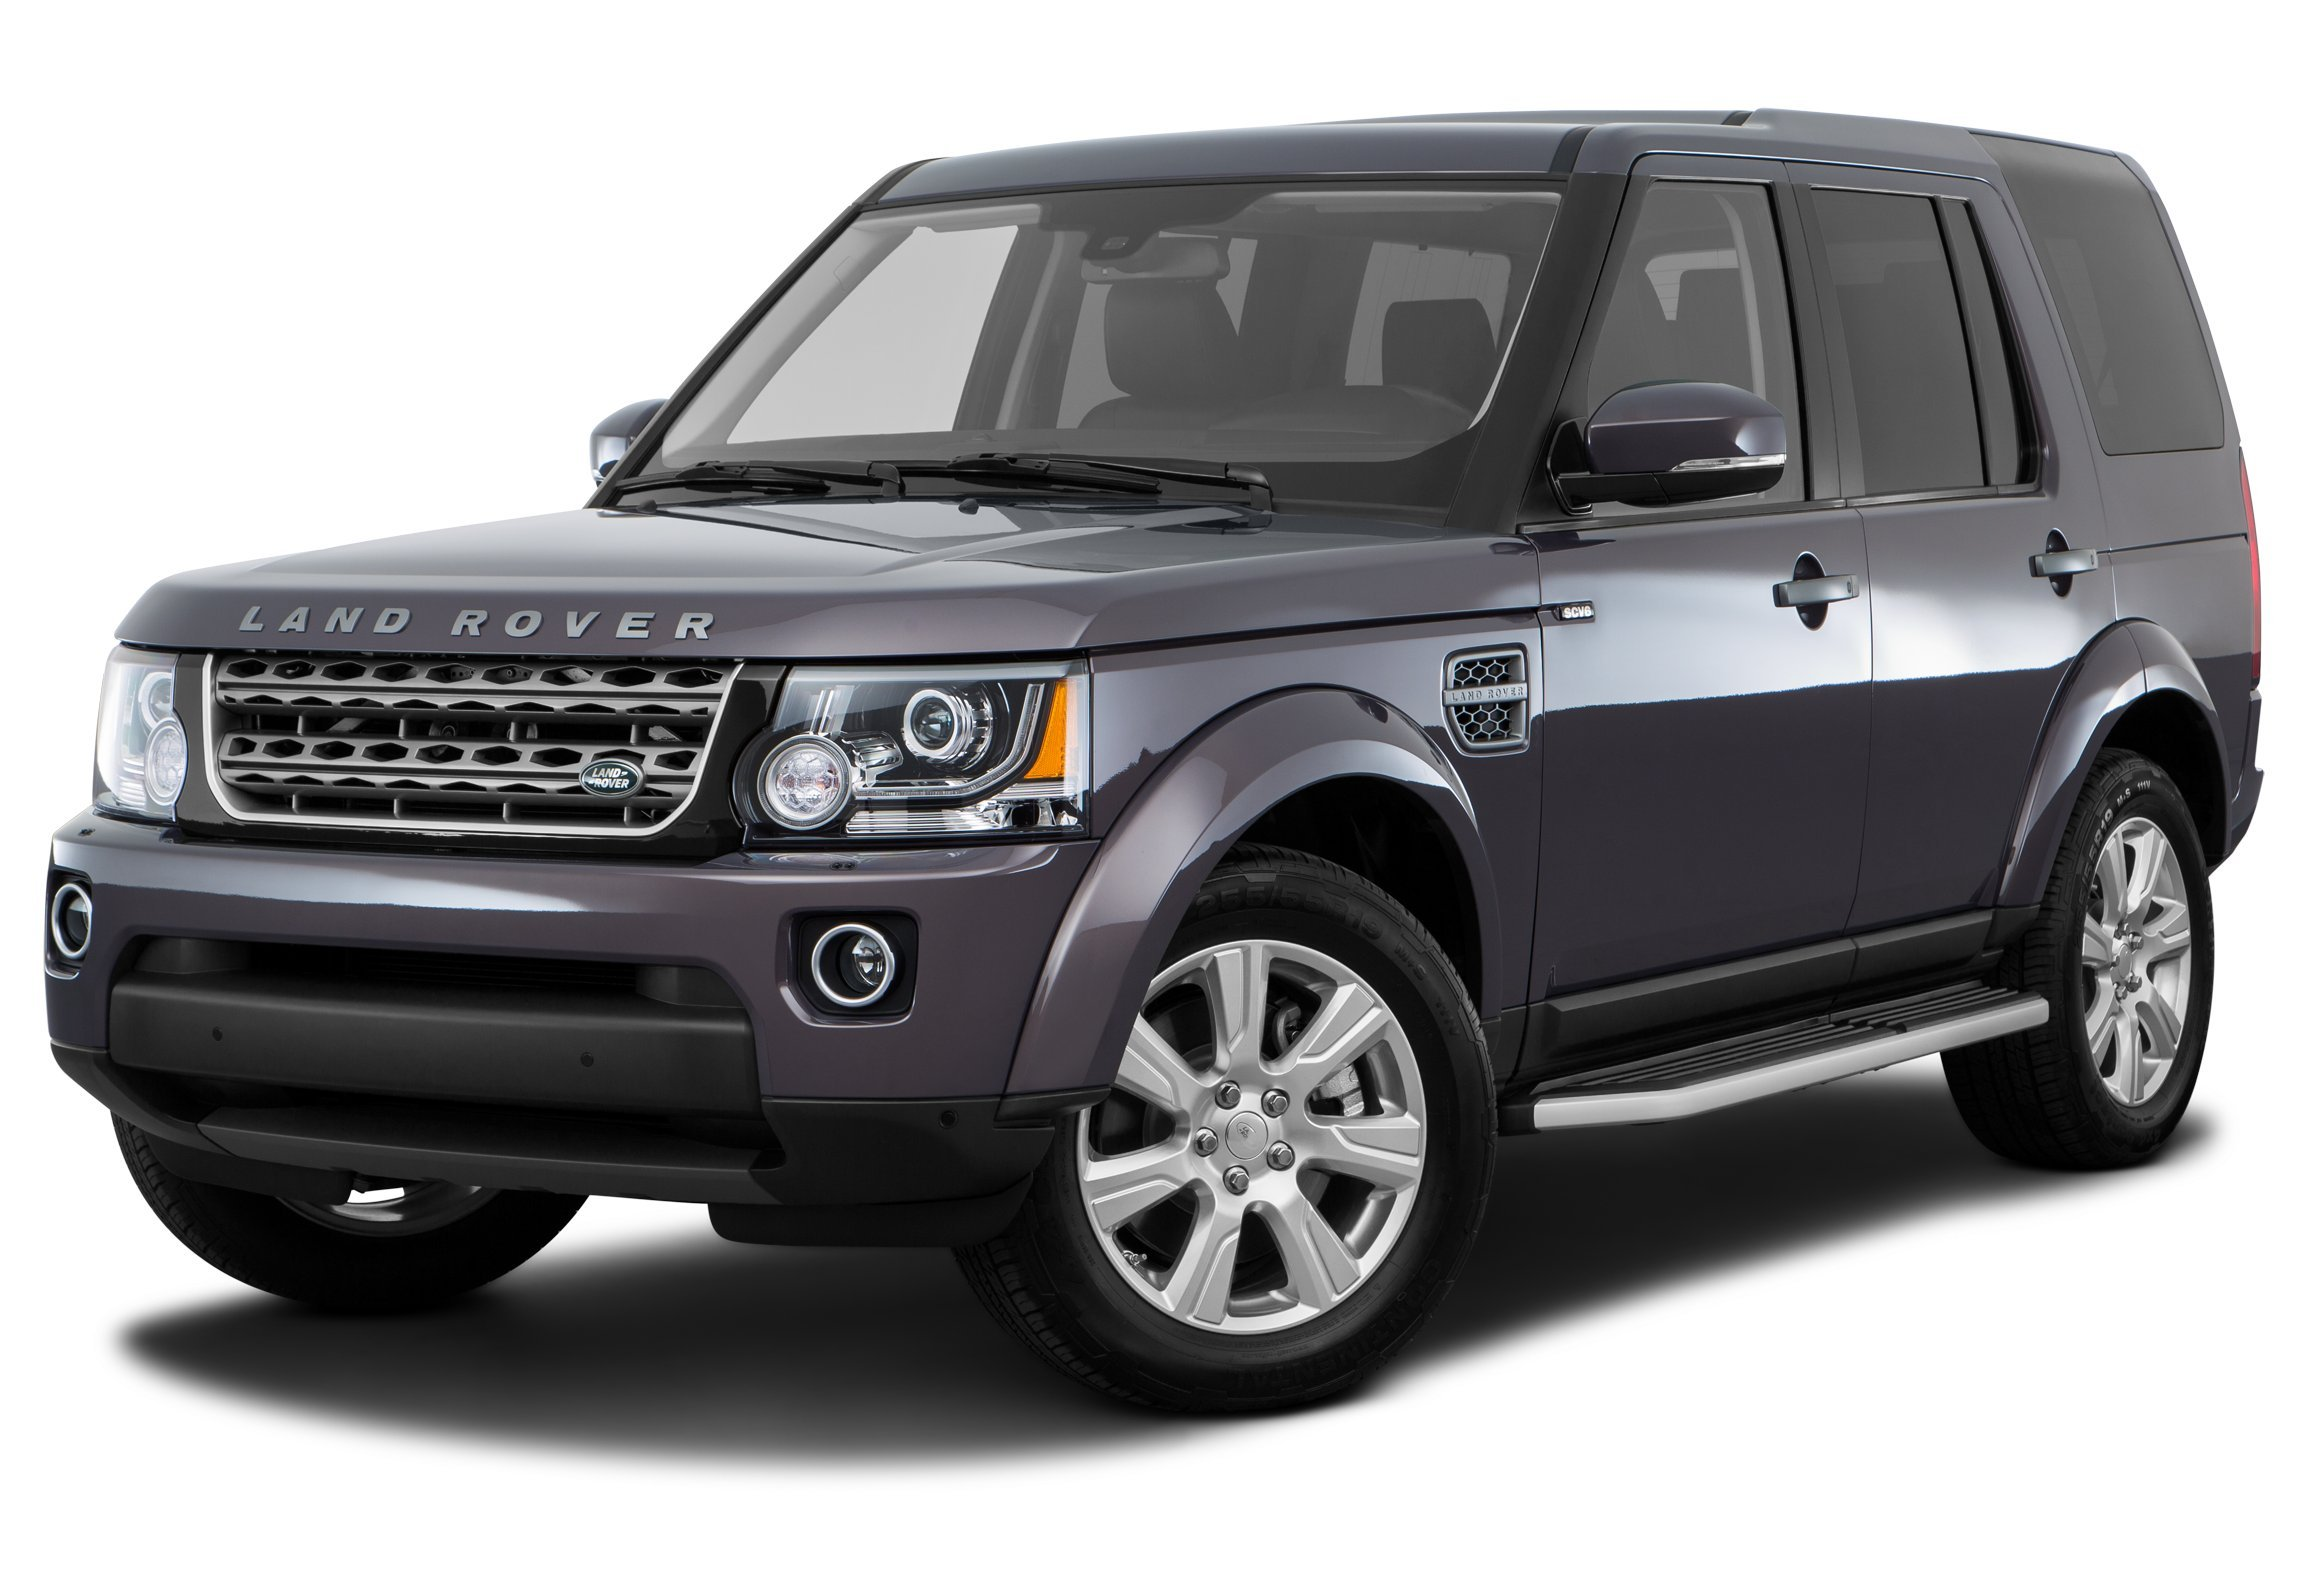 2016 land rover lr4 reviews images and specs vehicles. Black Bedroom Furniture Sets. Home Design Ideas